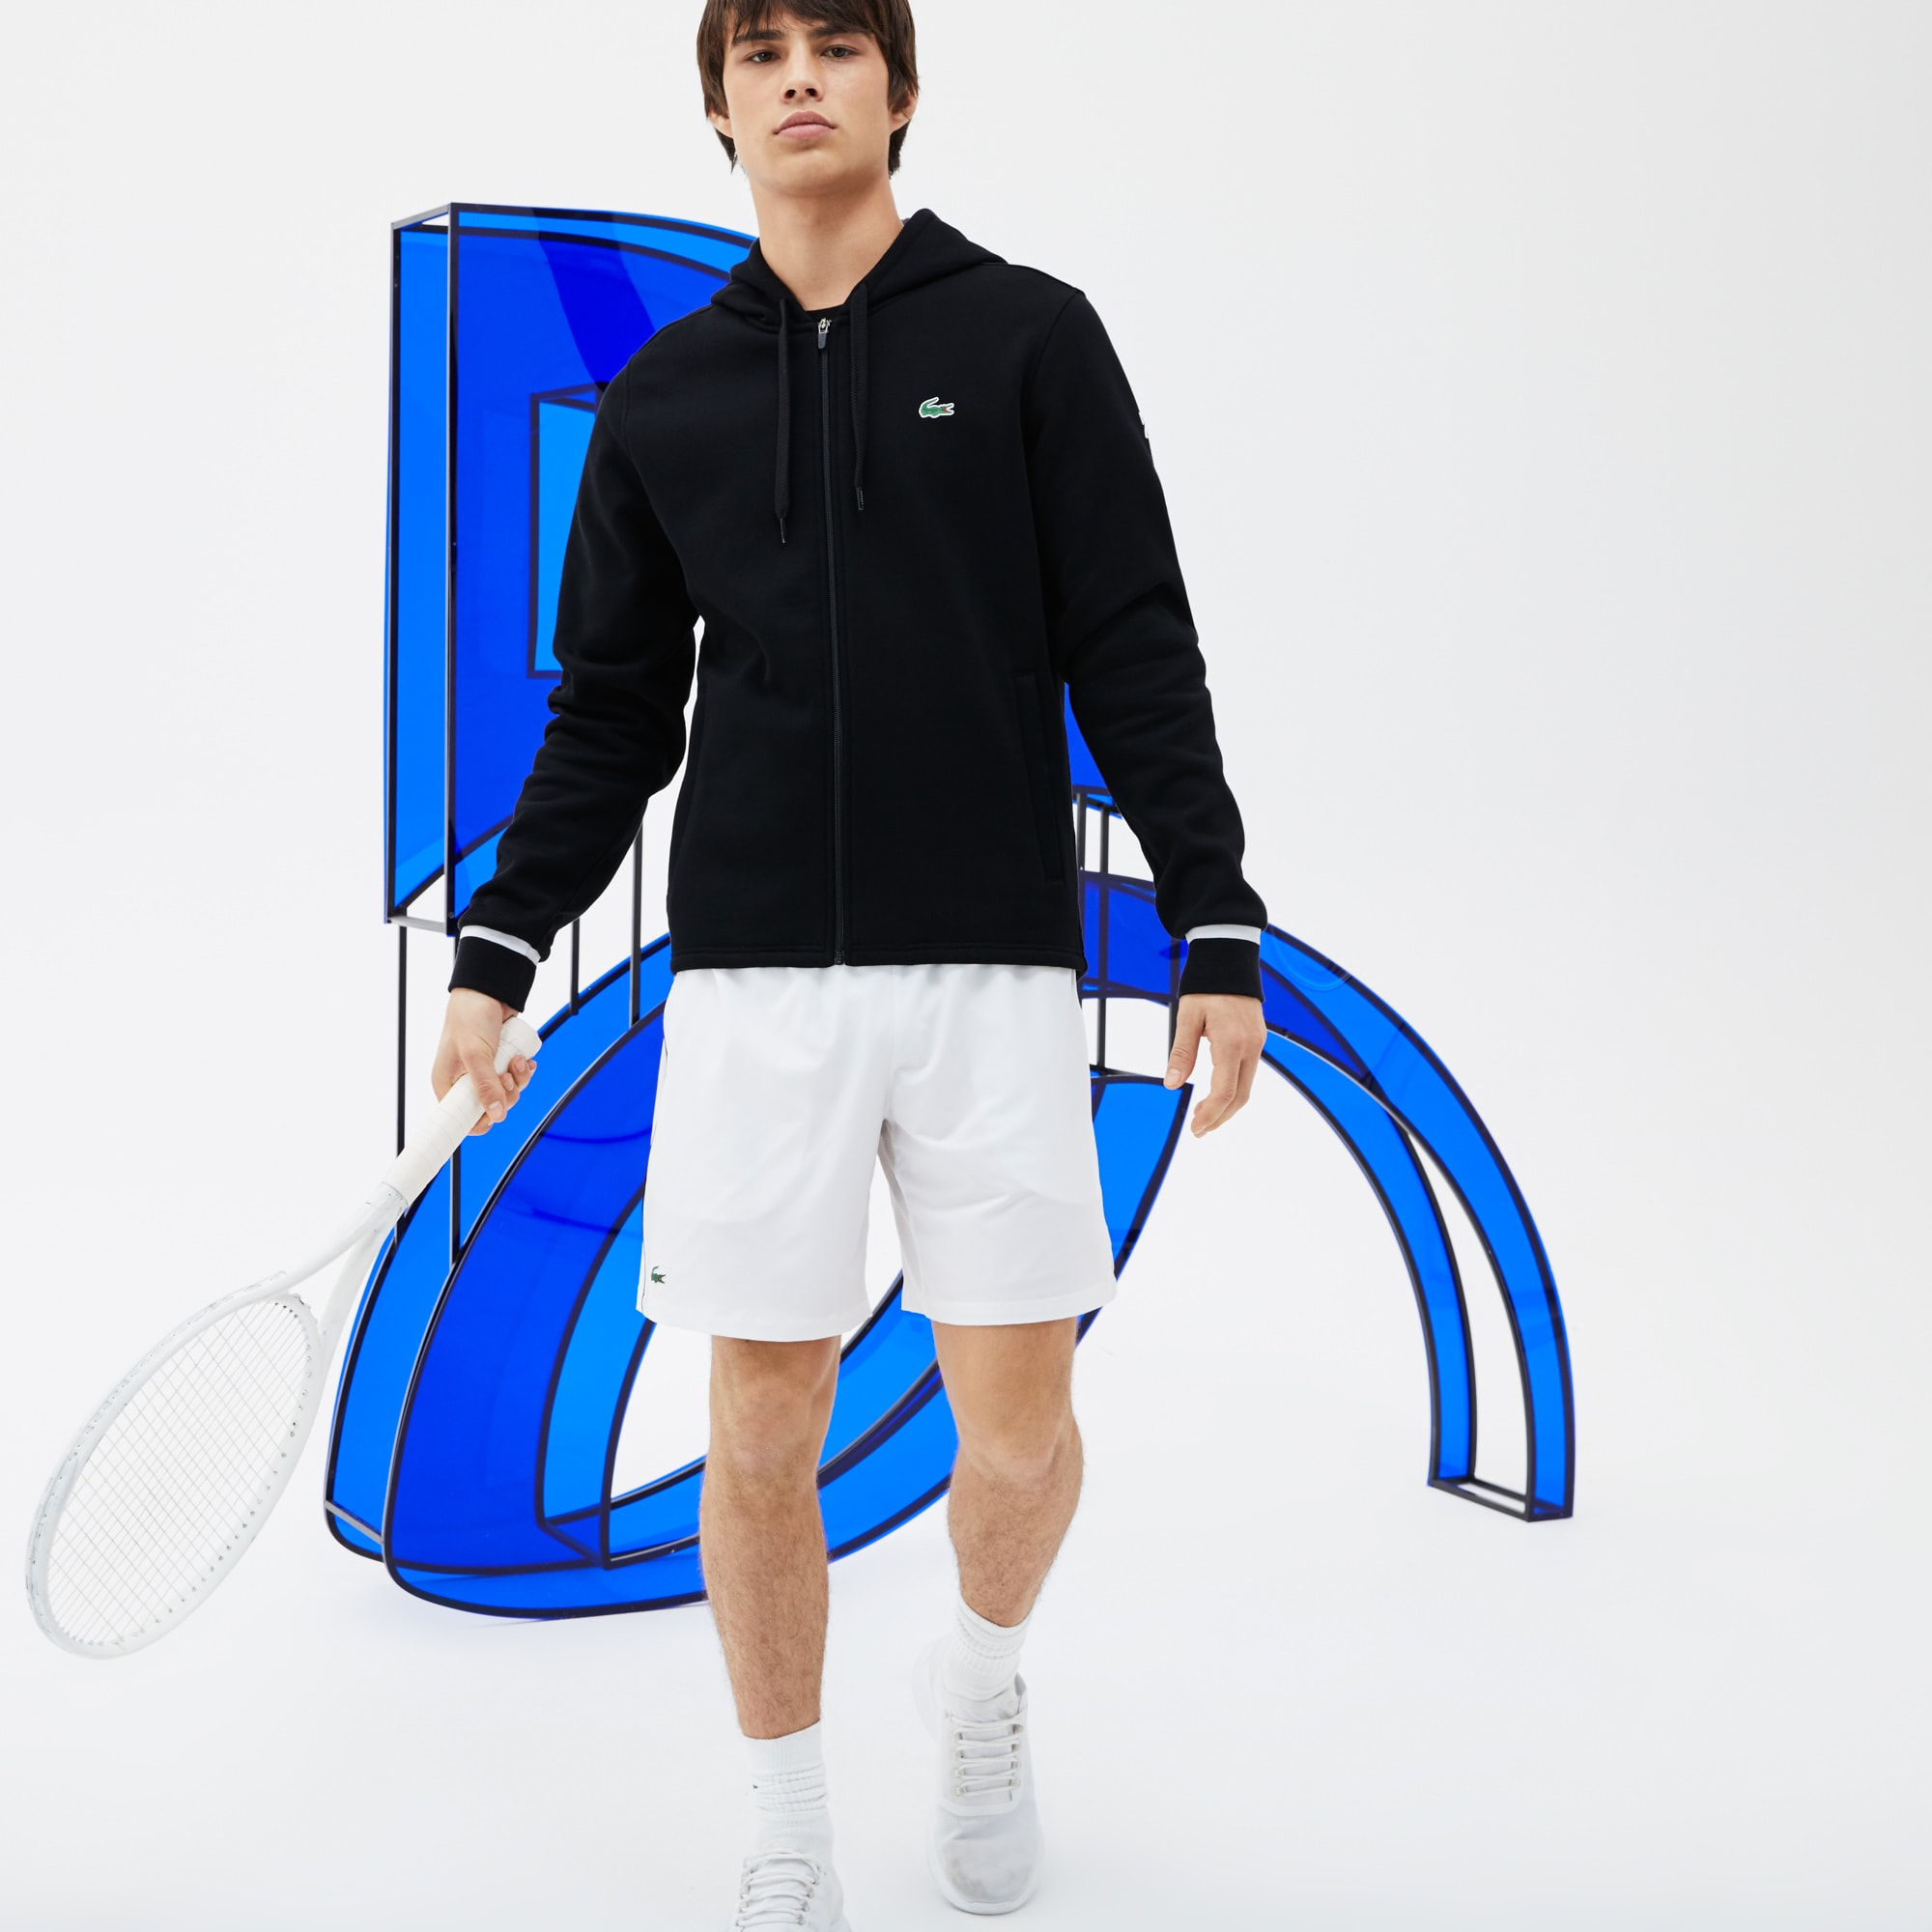 Men's Lacoste SPORT NOVAK DJOKOVIC SUPPORT WITH STYLE COLLECTION Hooded Fleece Zip Sweatshirt